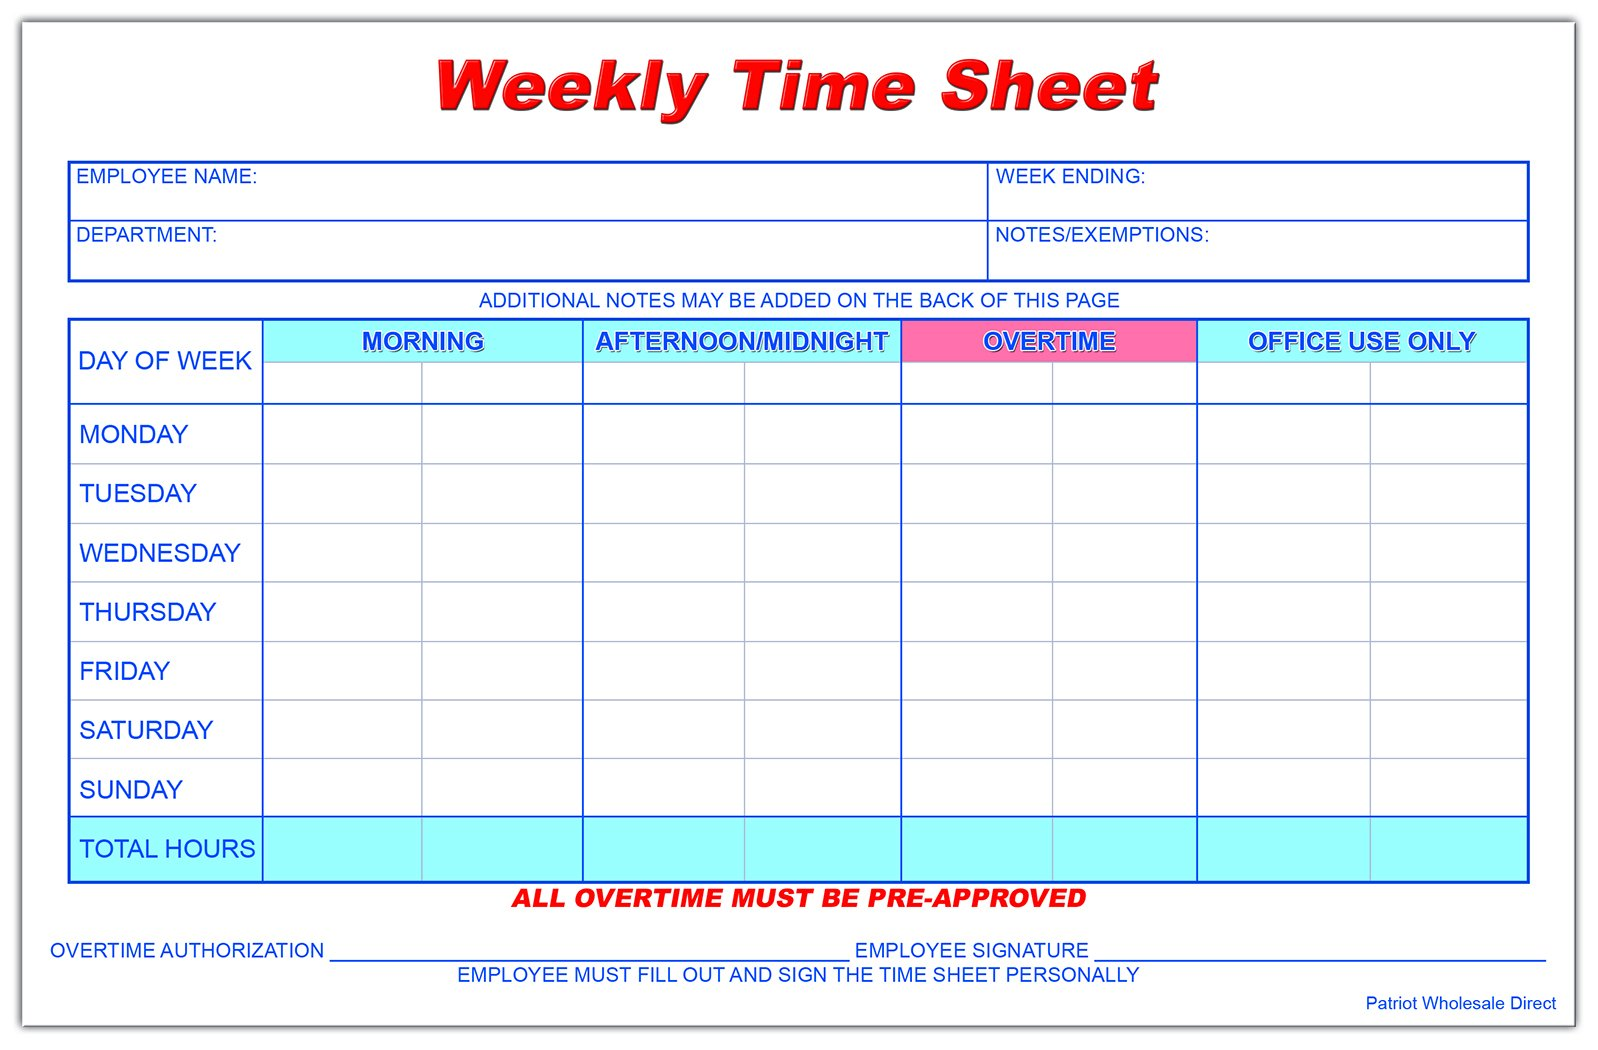 Weekly Employee Time Sheet, 8.5 x 5.5 Inches, 50 Sheets per Pad, 5 Pads/Pack (250 Total)